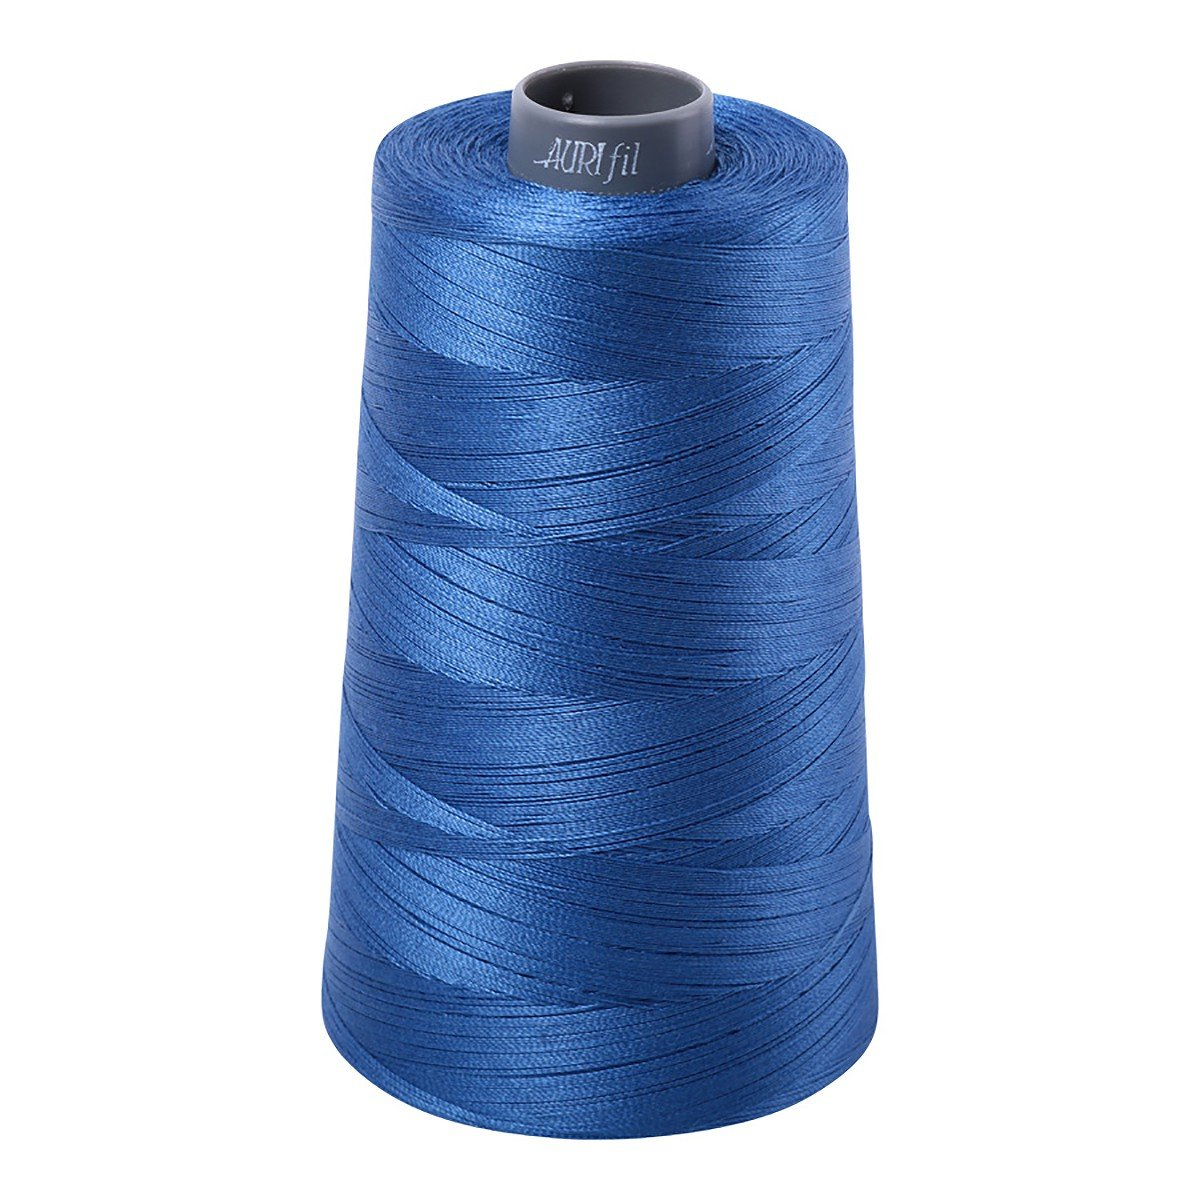 Mako (Cotton) Embroidery Thread 28wt 3609yds Delft Blue